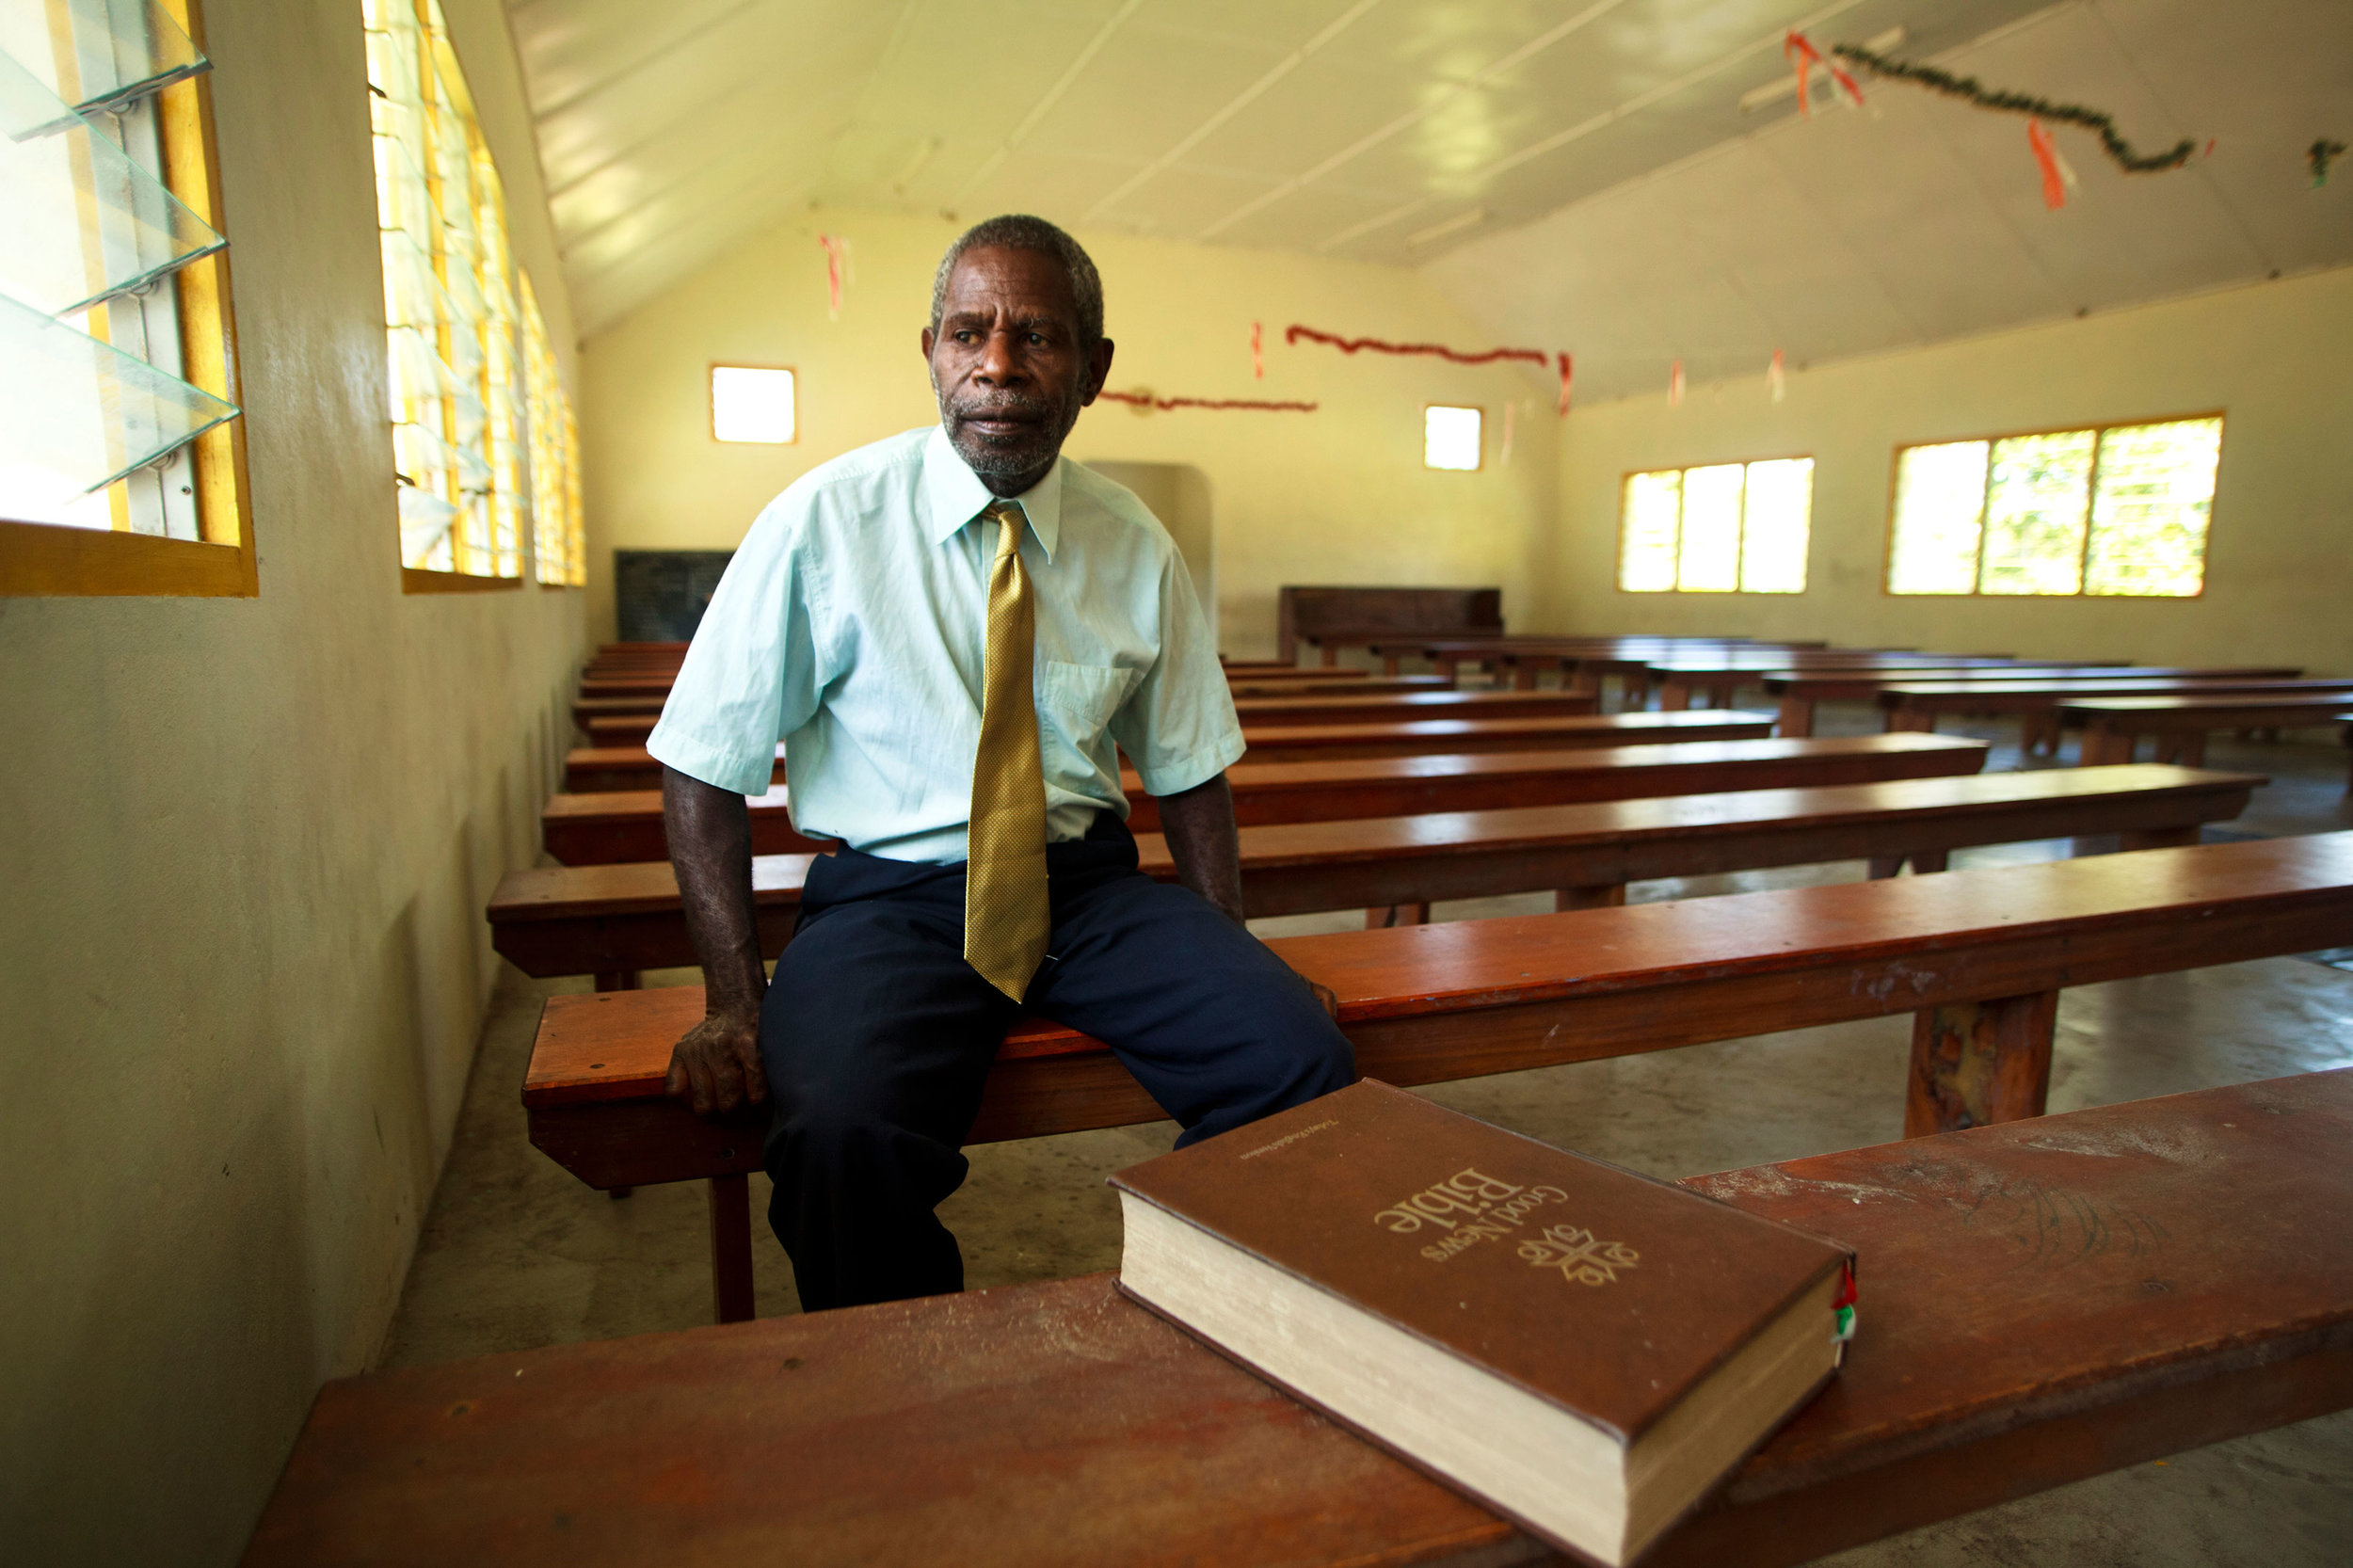 Ayar in his role as the village elder sitting in a church after Sunday Mass.